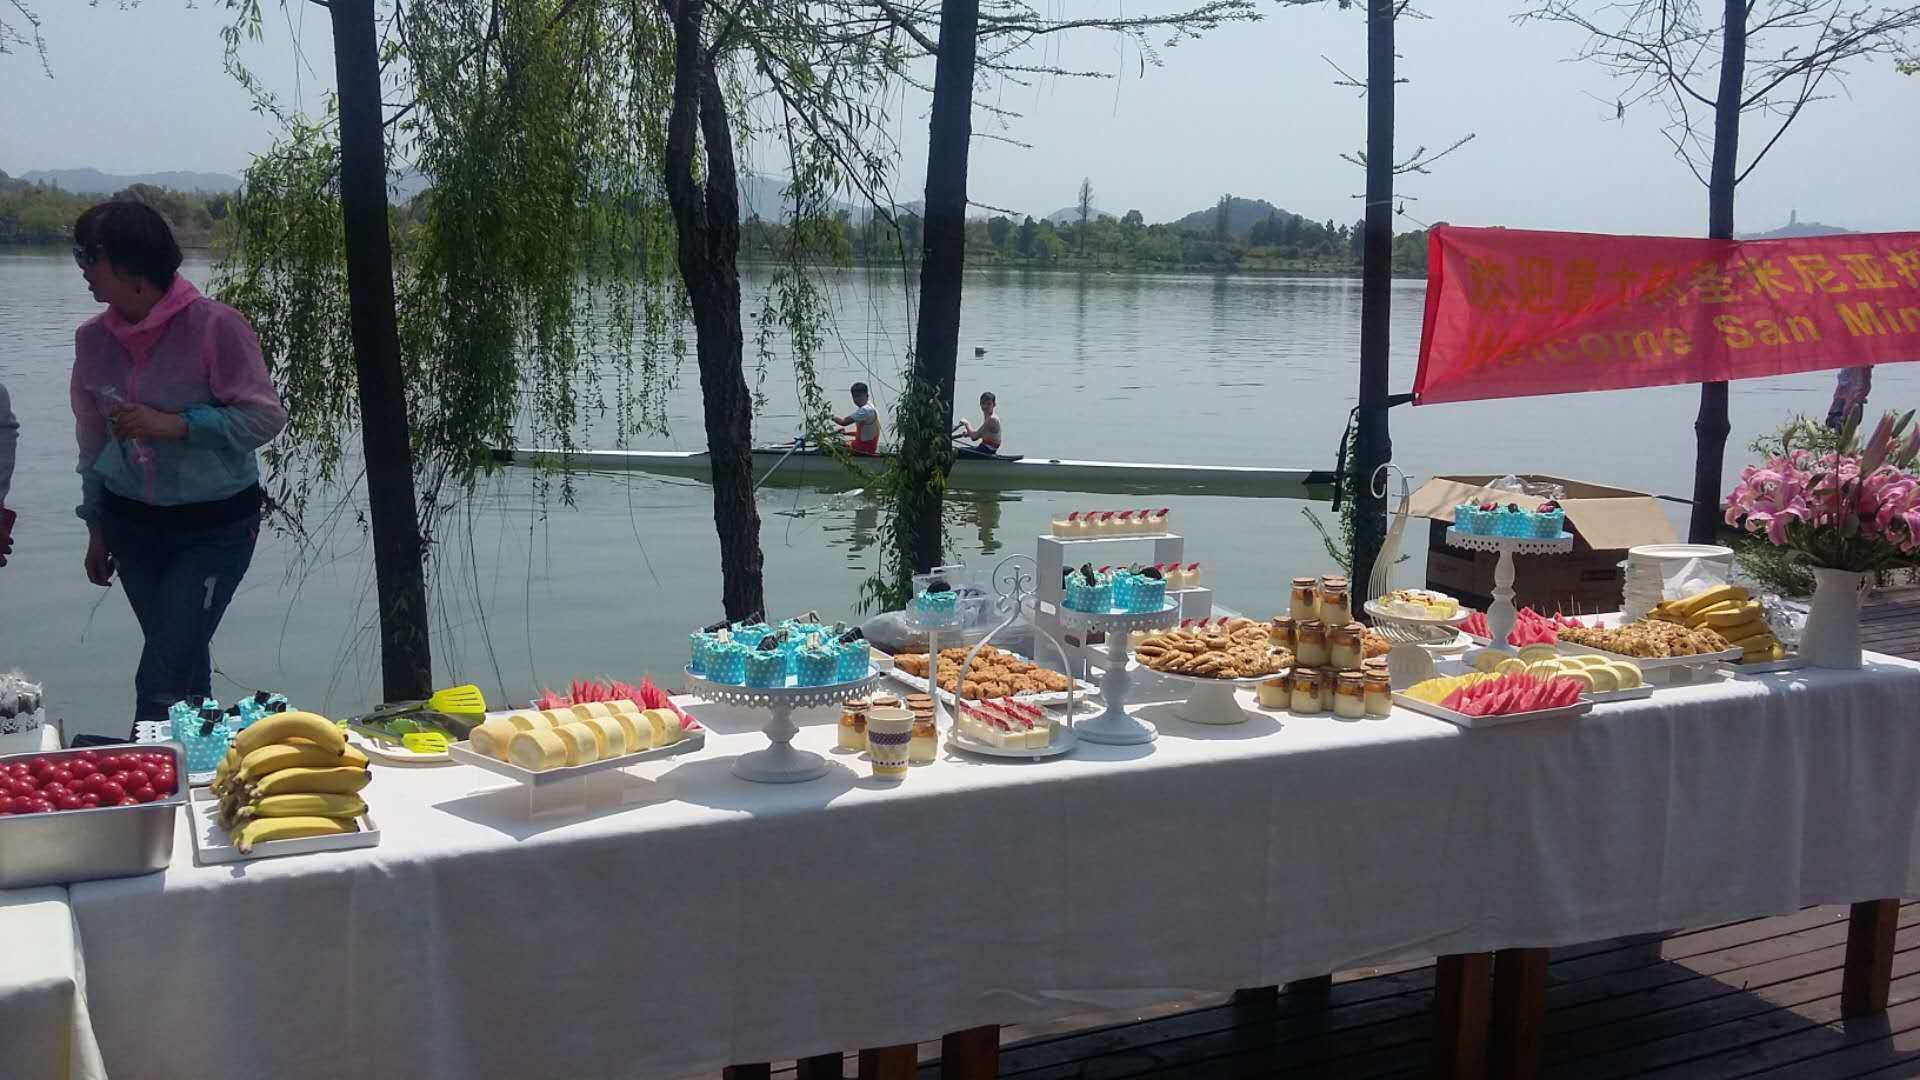 This amazing buffet was the most welcoming part, especially to all of the kids!